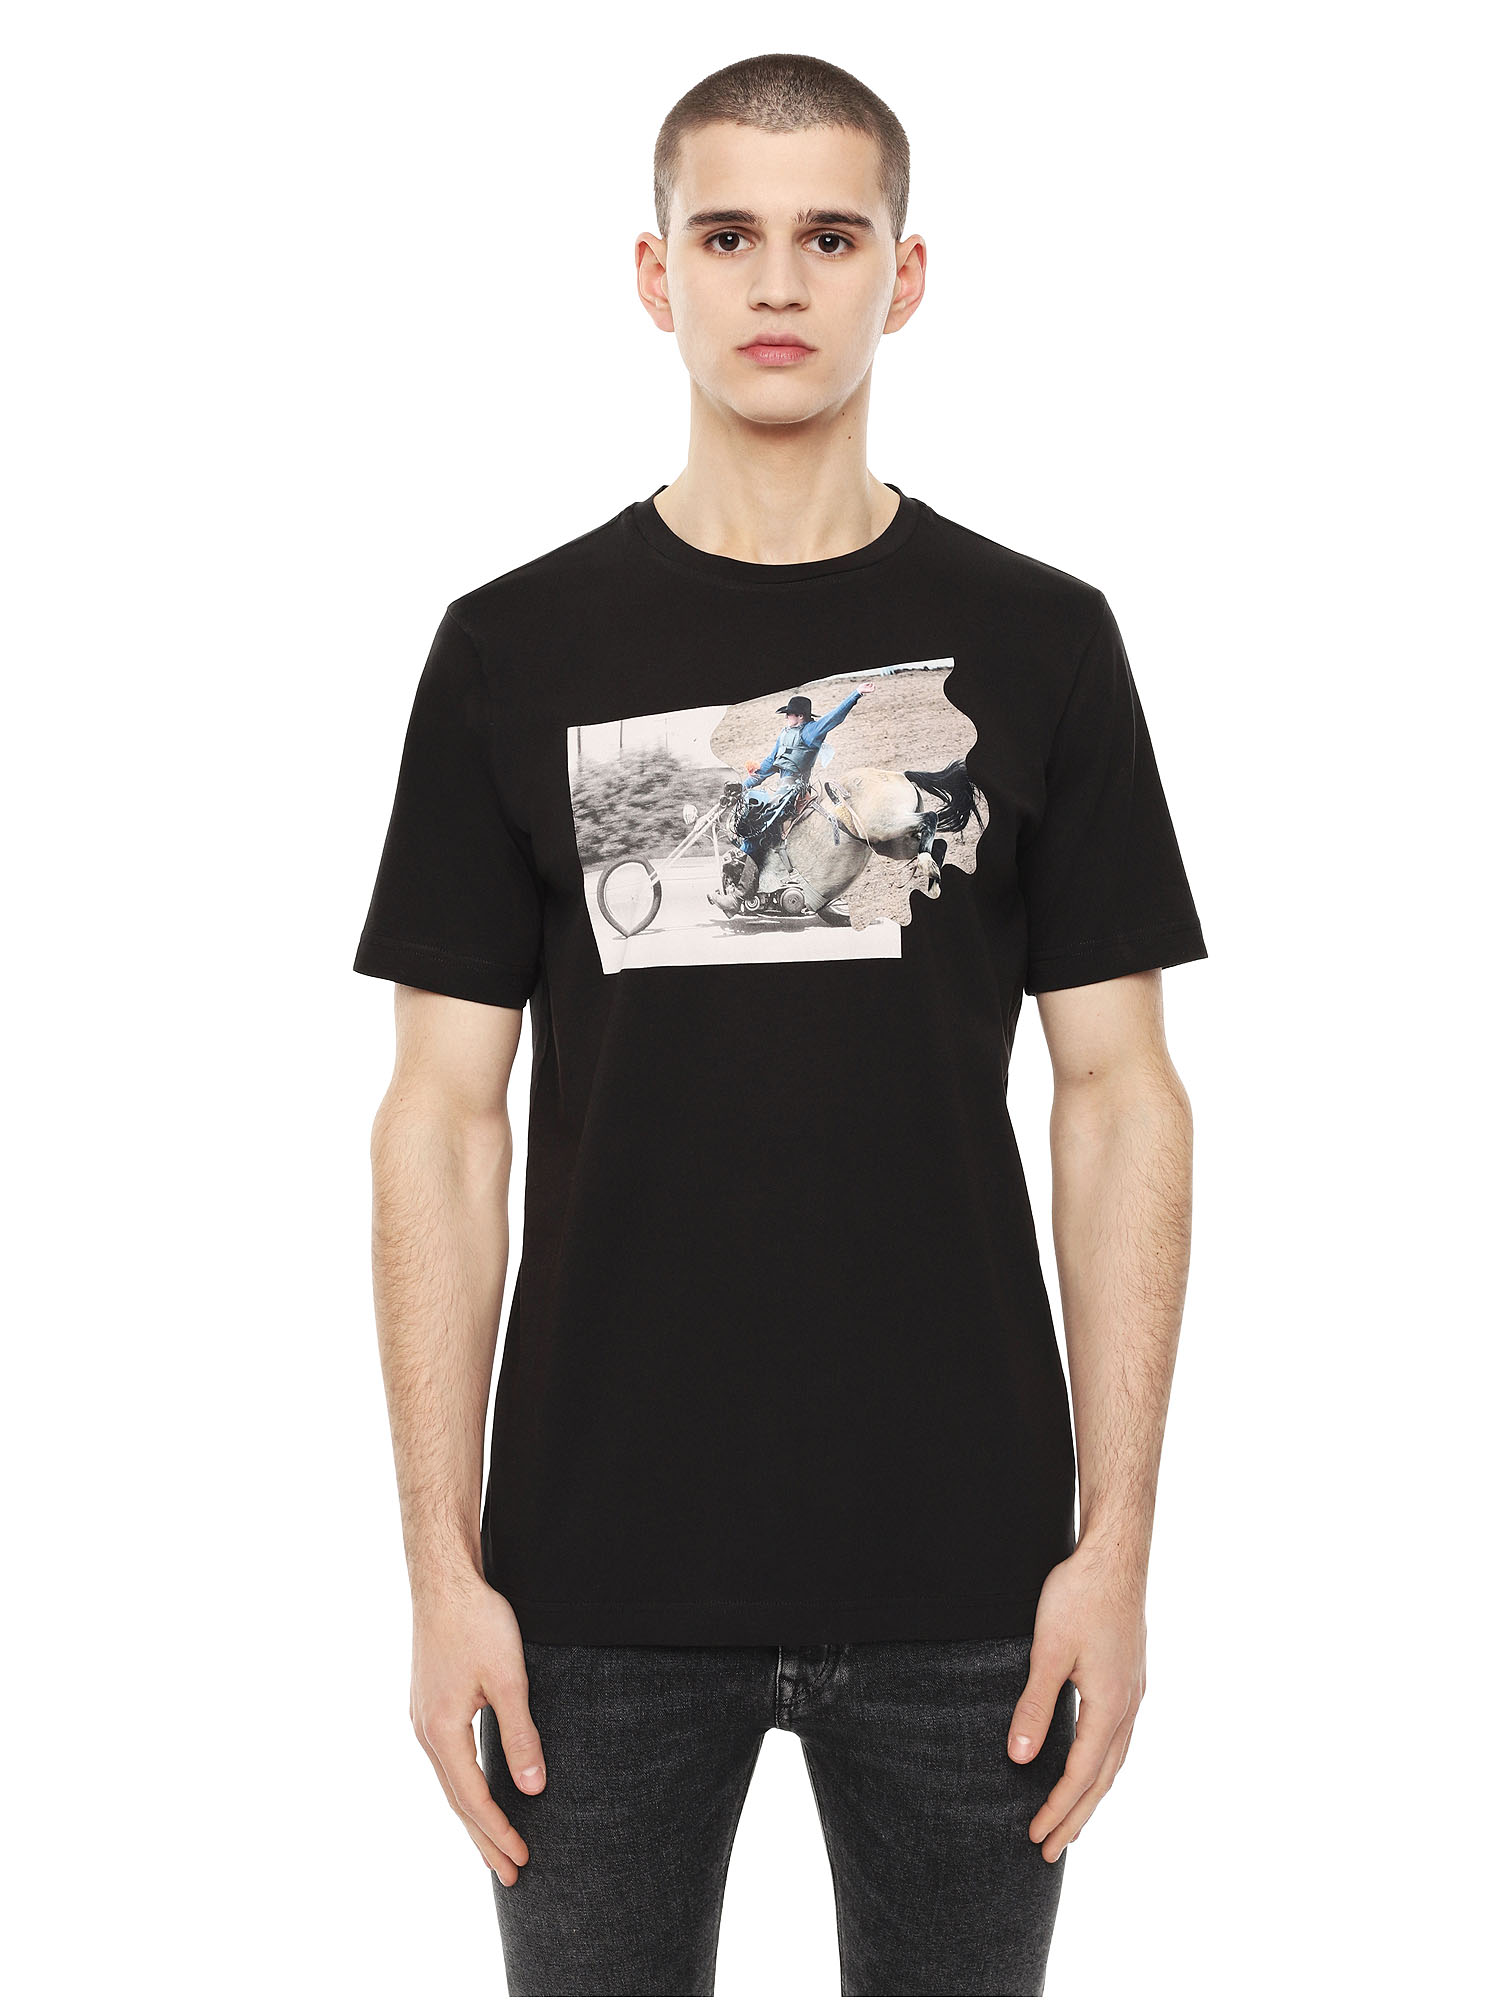 Diesel - TY-CHOPPER,  - T-Shirts - Image 1